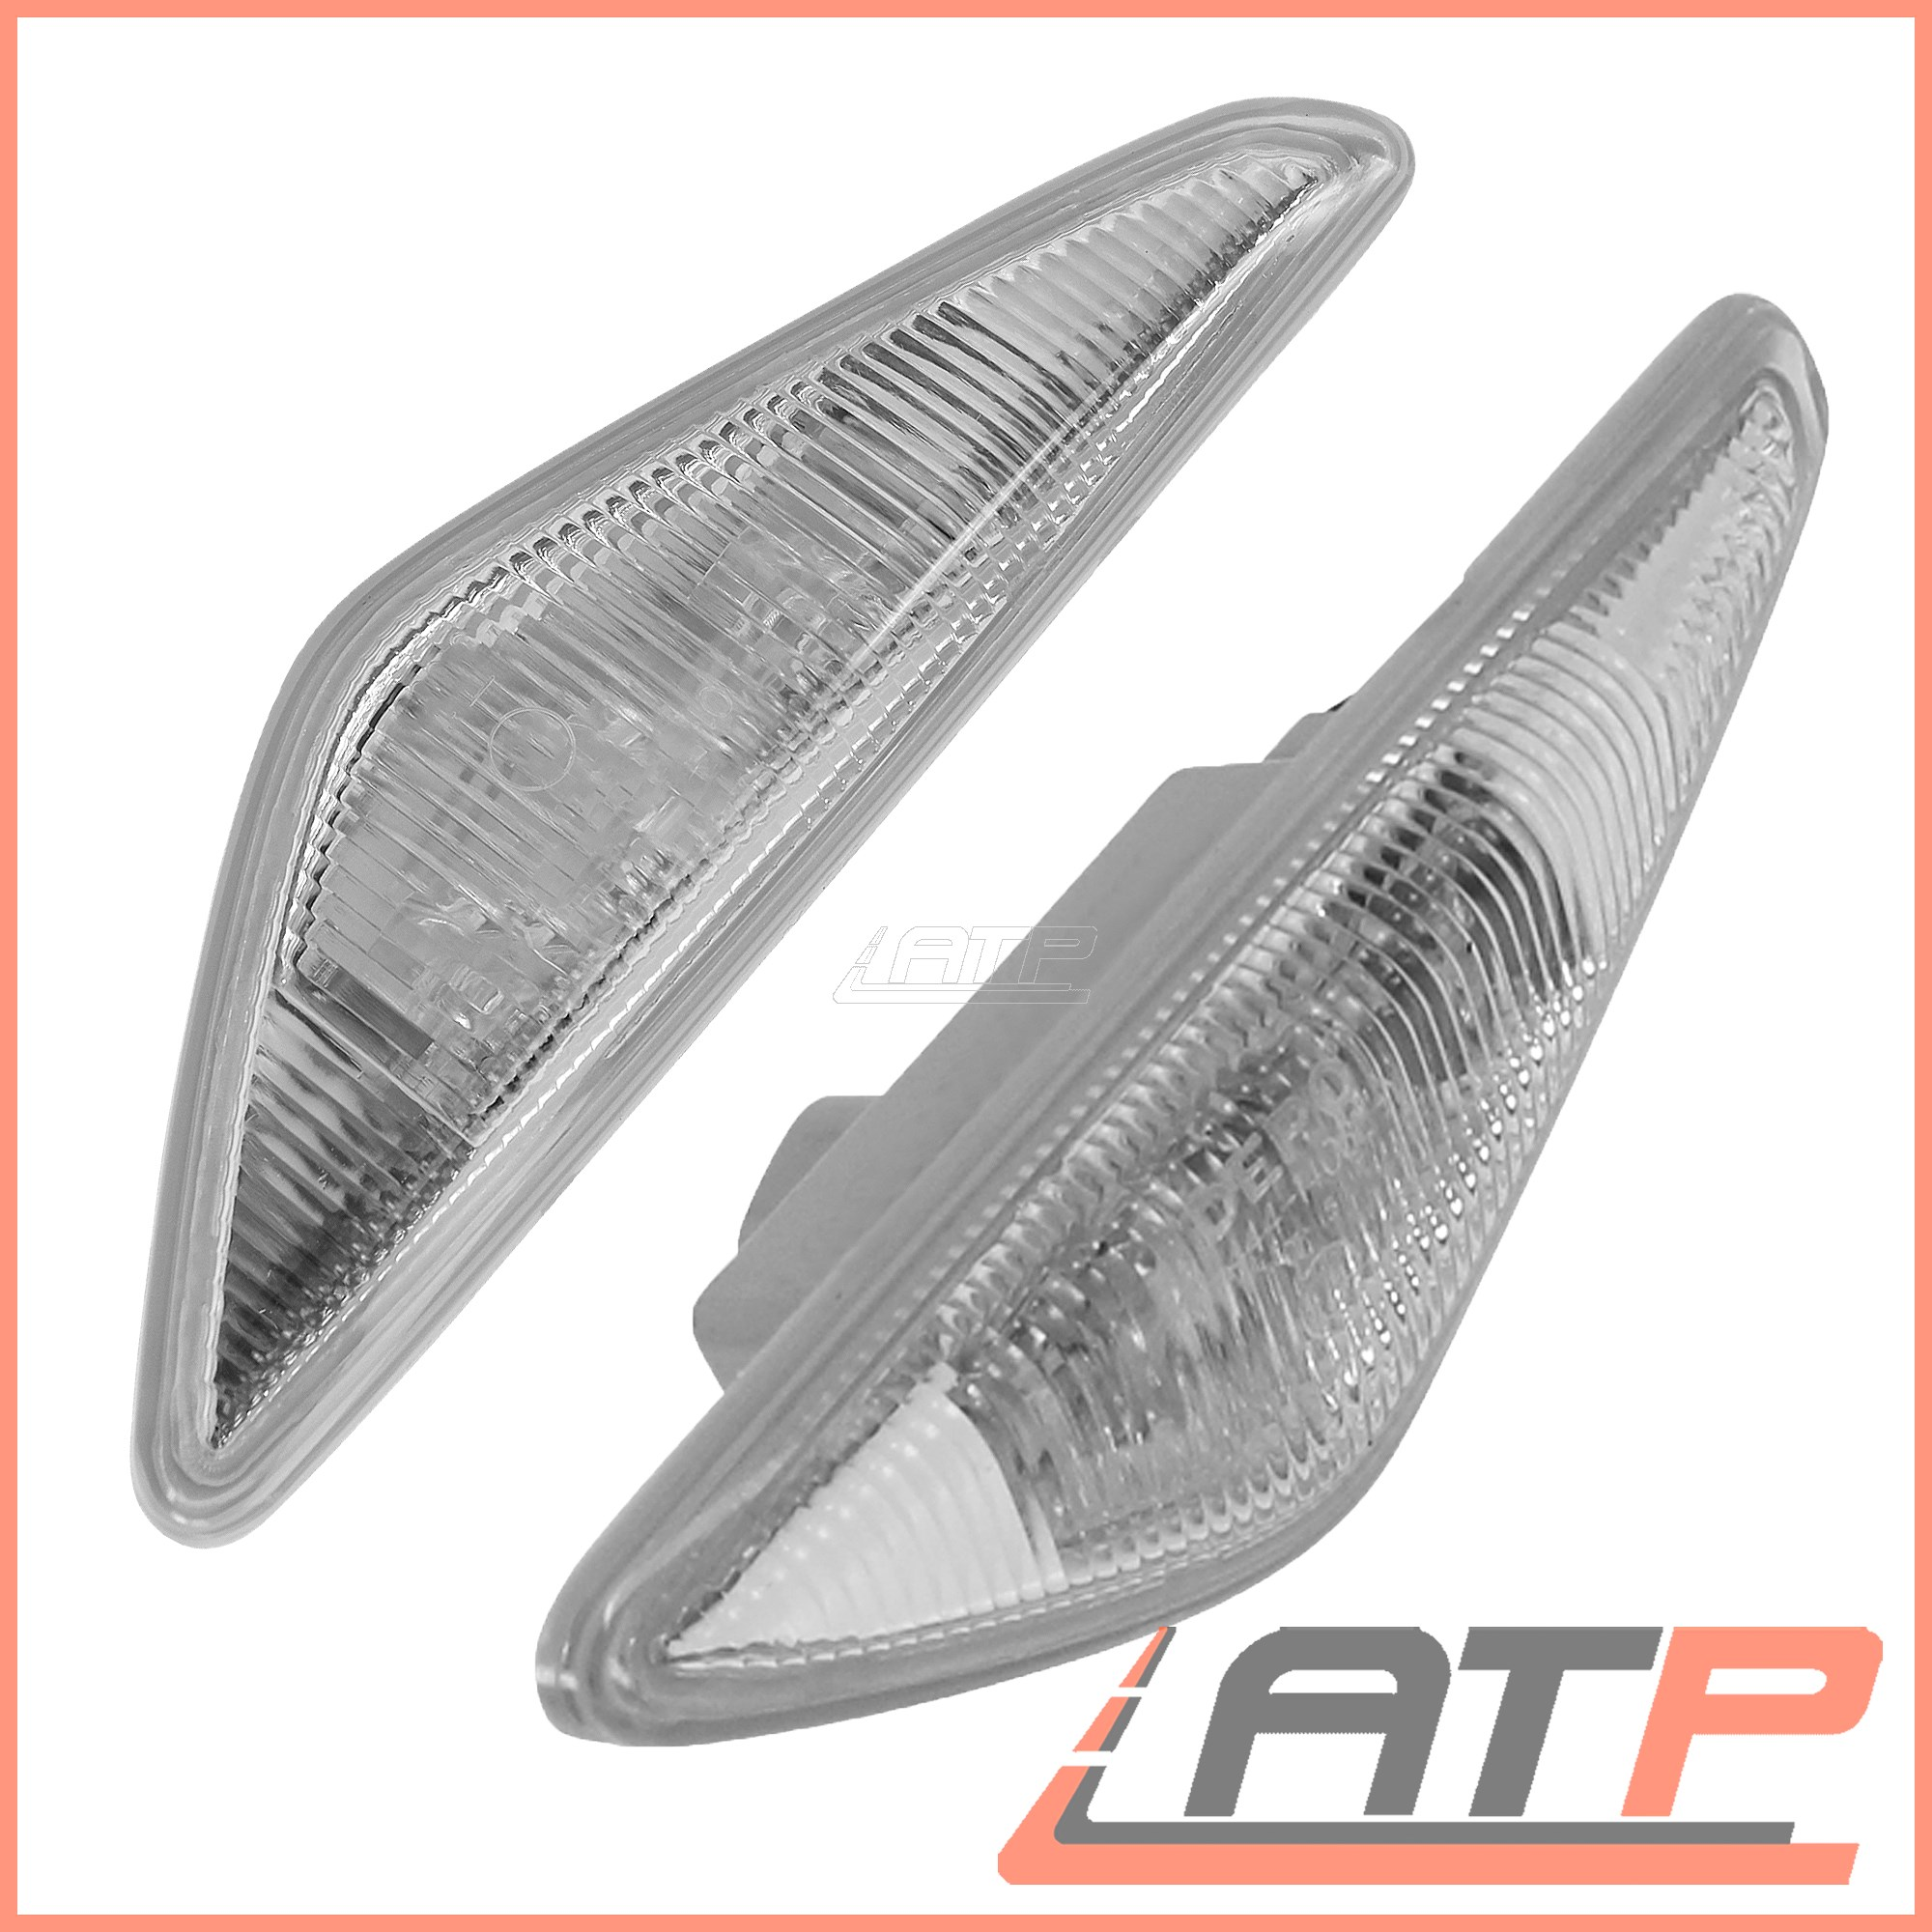 2X-LED-INDICATOR-TURN-SIGNAL-SIDE-REPEAT-LEFT-RIGHT-BMW-3-SERIES-E46